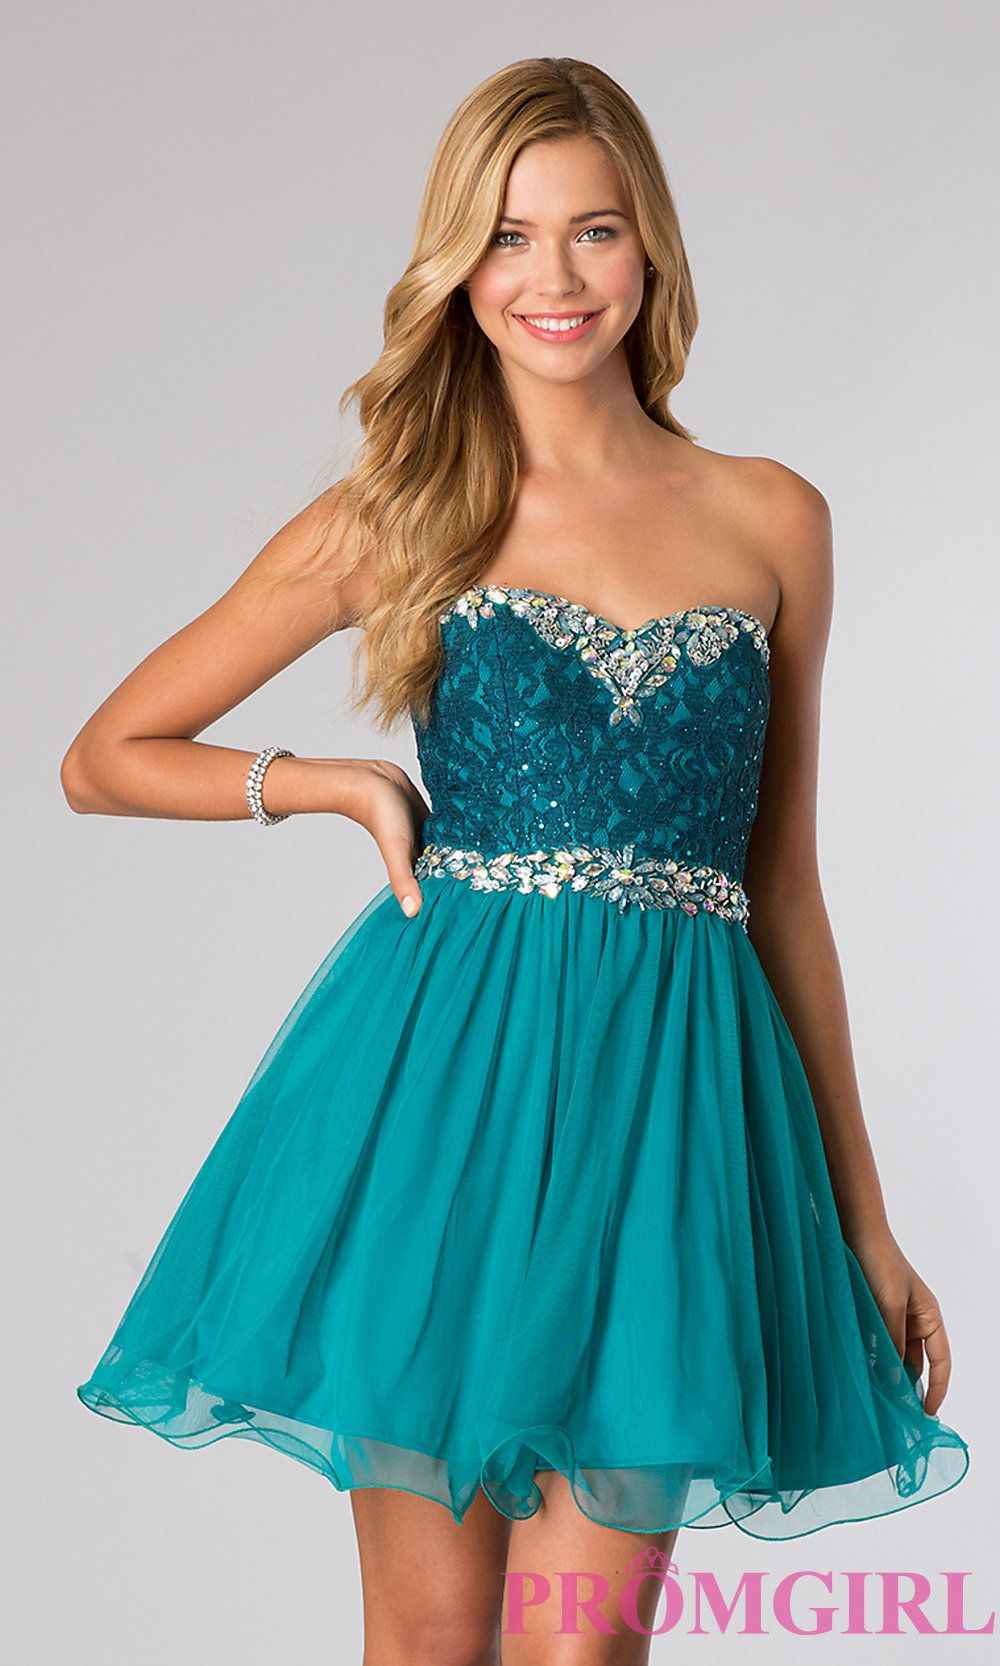 Short strapless dresses for homecoming promgirl sexy summer mini